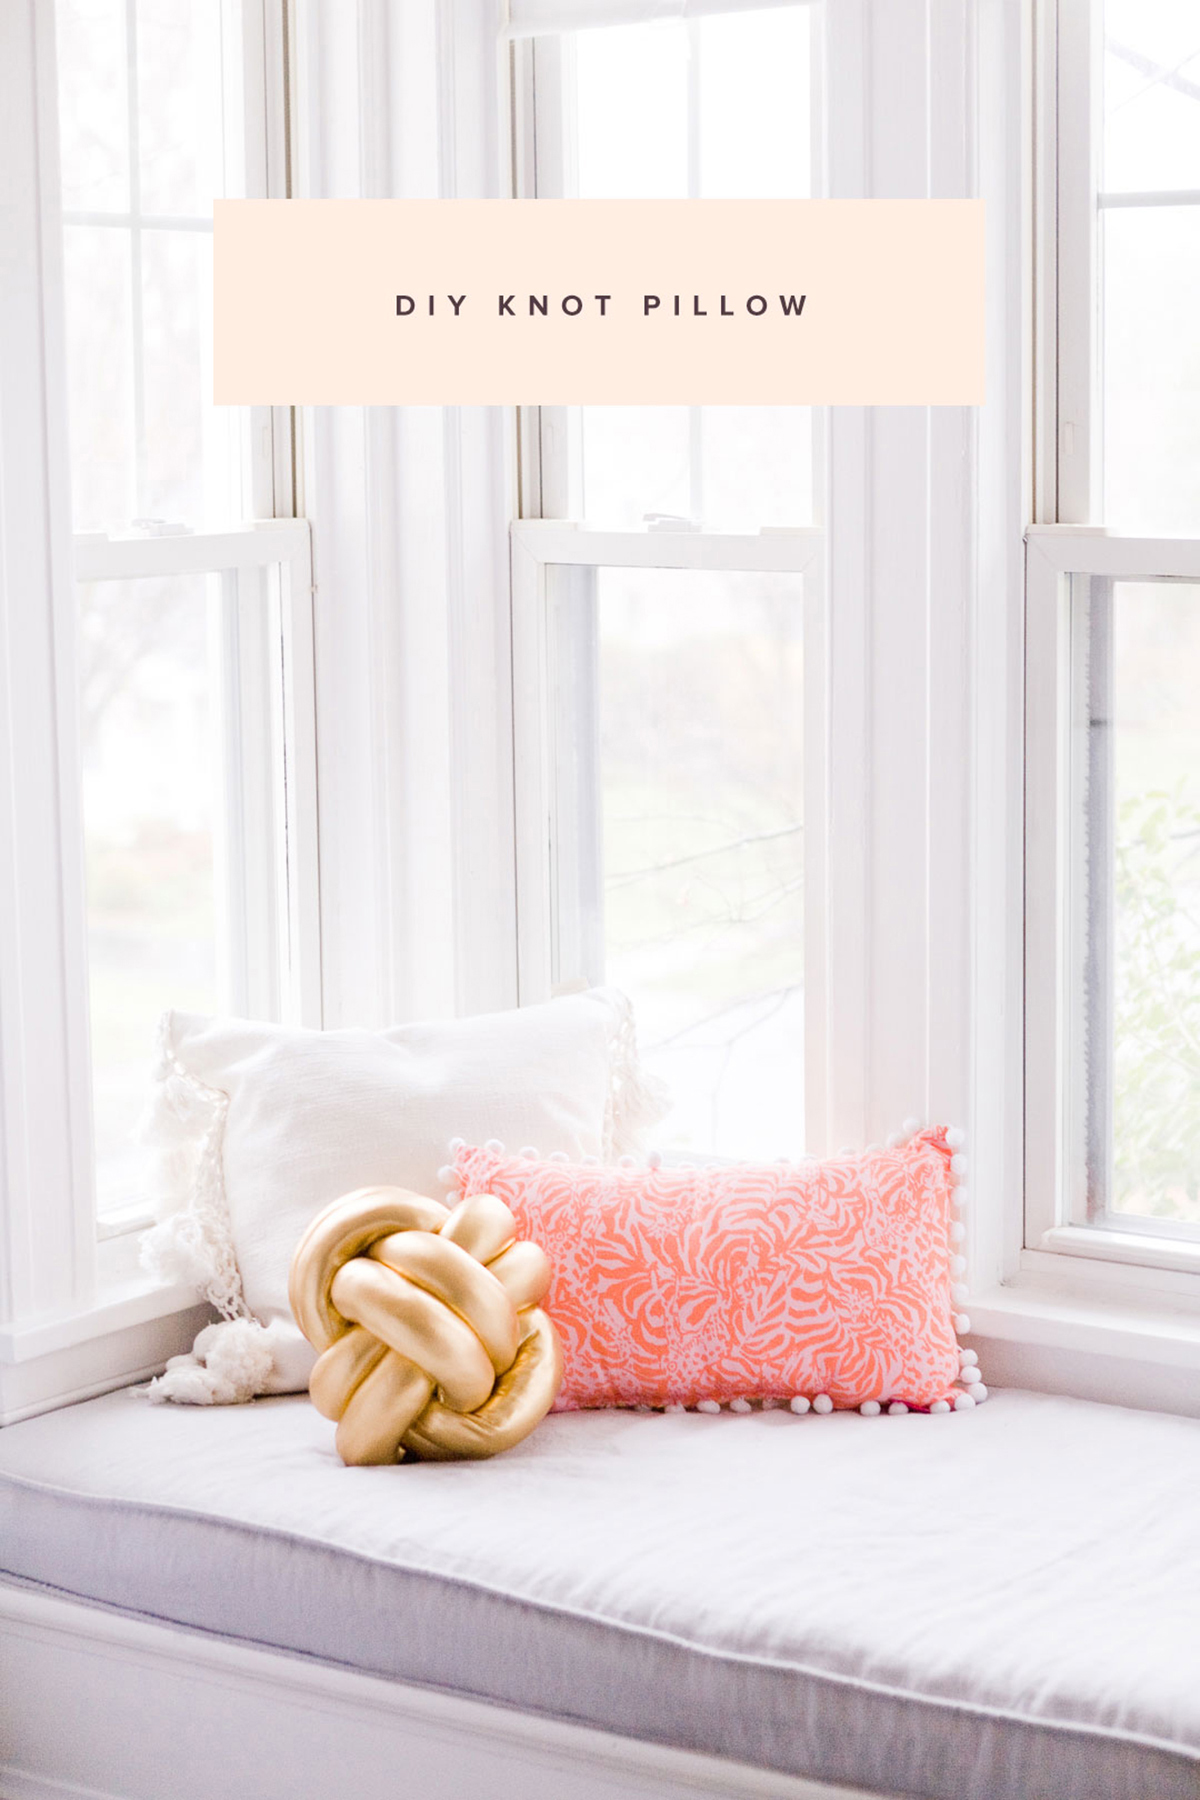 DIY Knot Pillow Tutorial